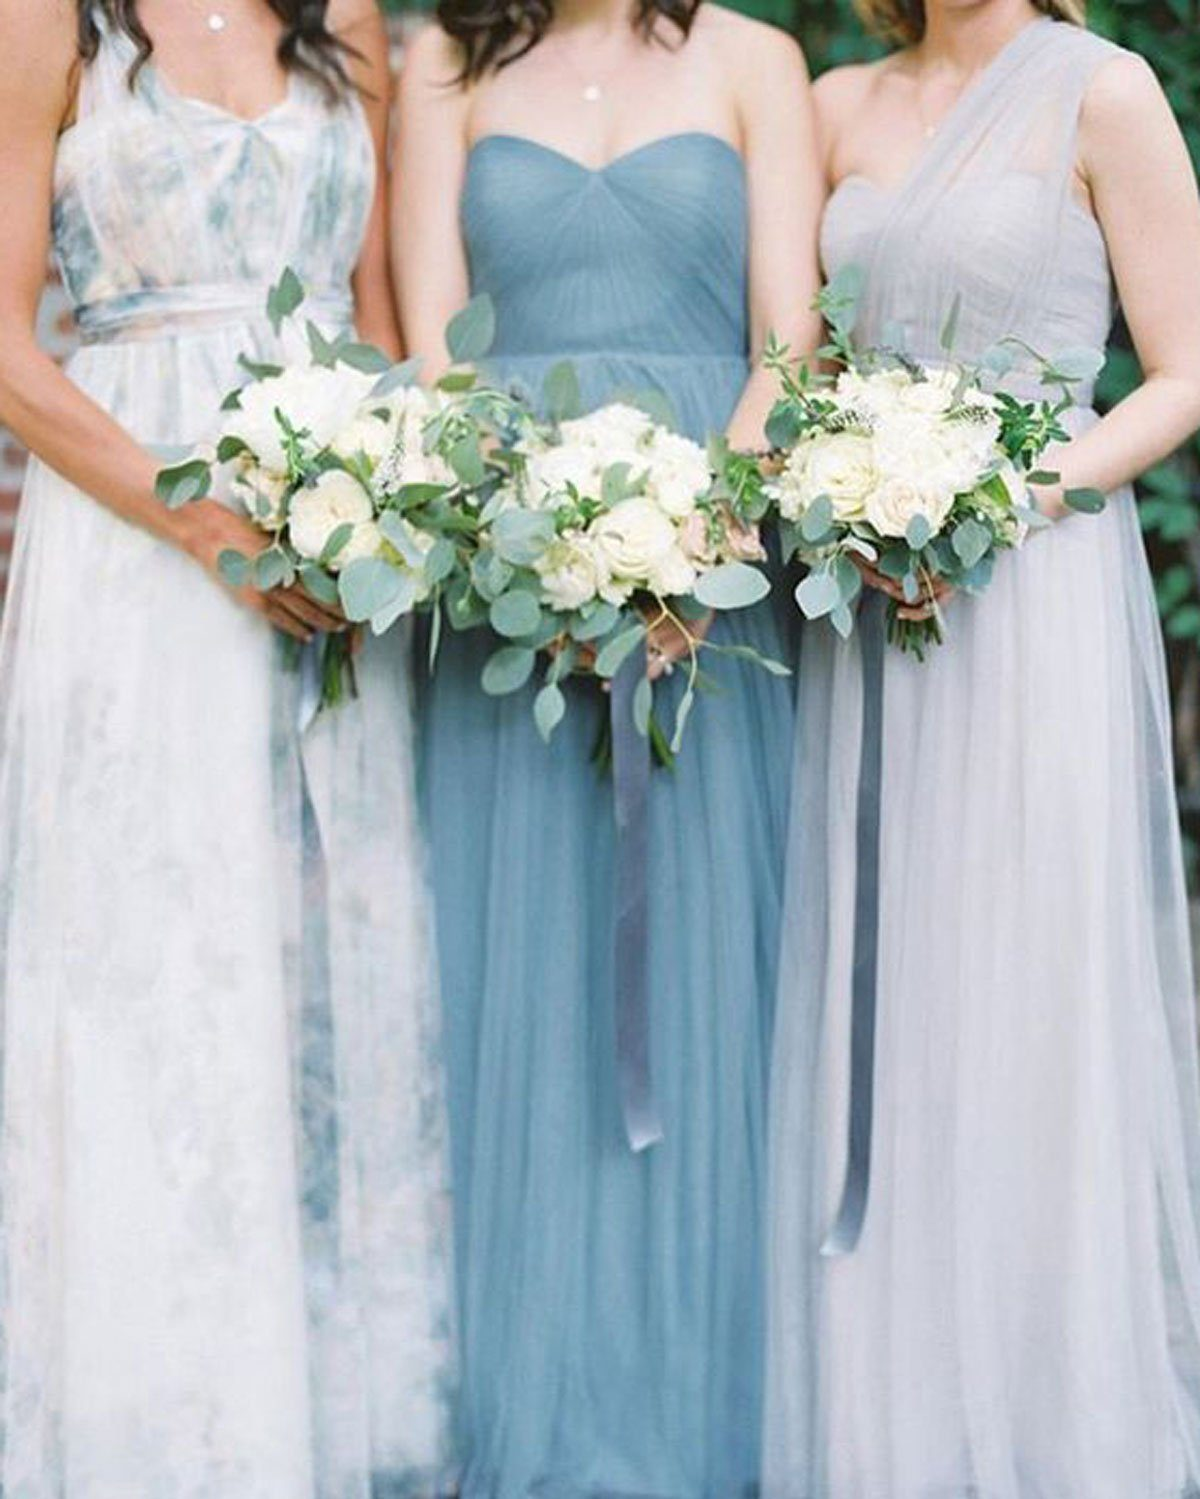 Dusty Blue Bridesmaids Dresses